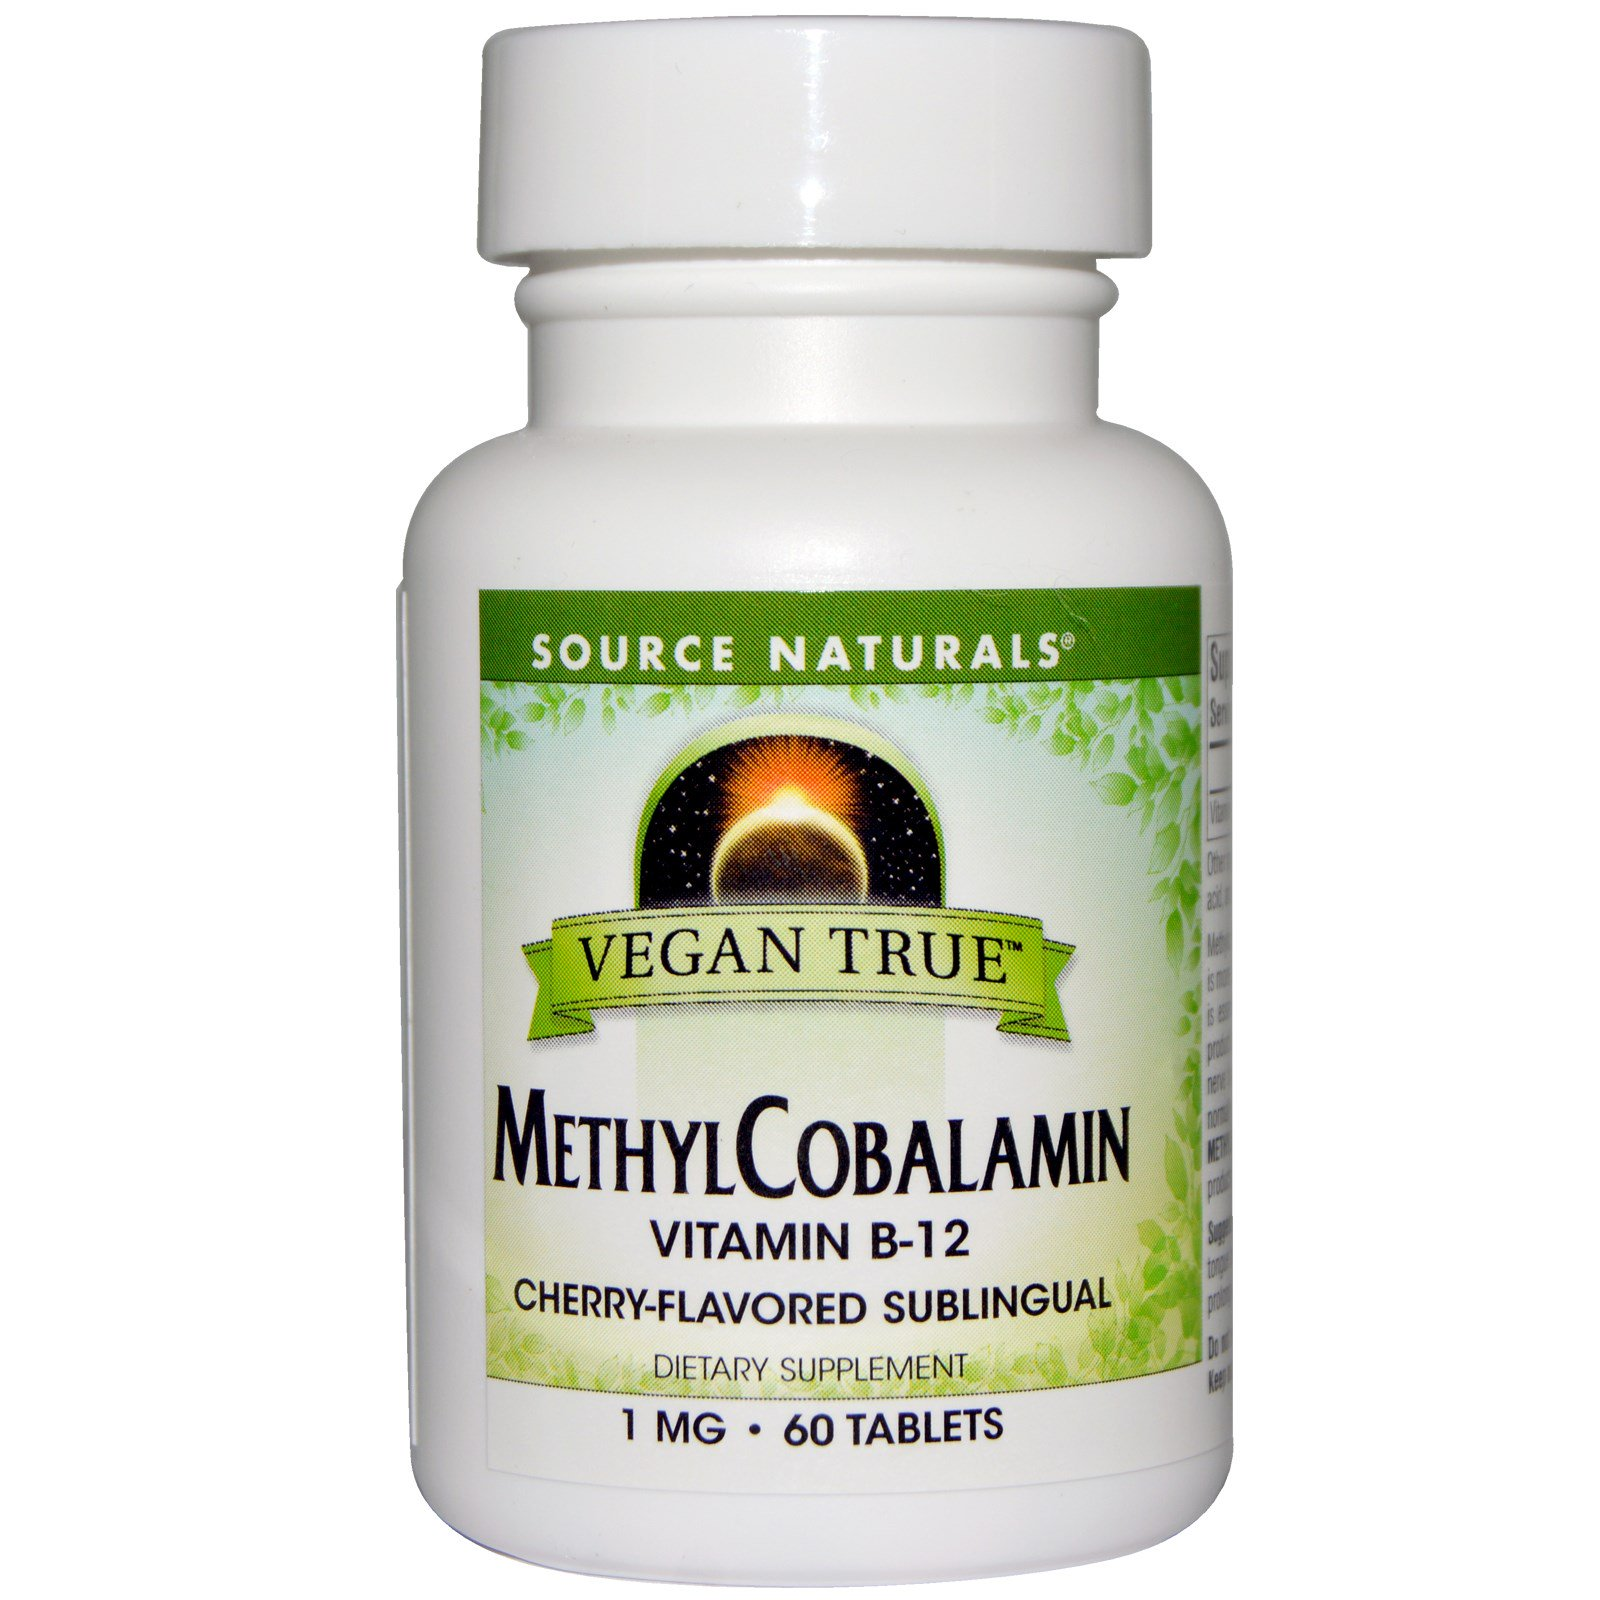 Source Naturals, Vegan True, MethylCobalamin, Cherry, 60 Tablets